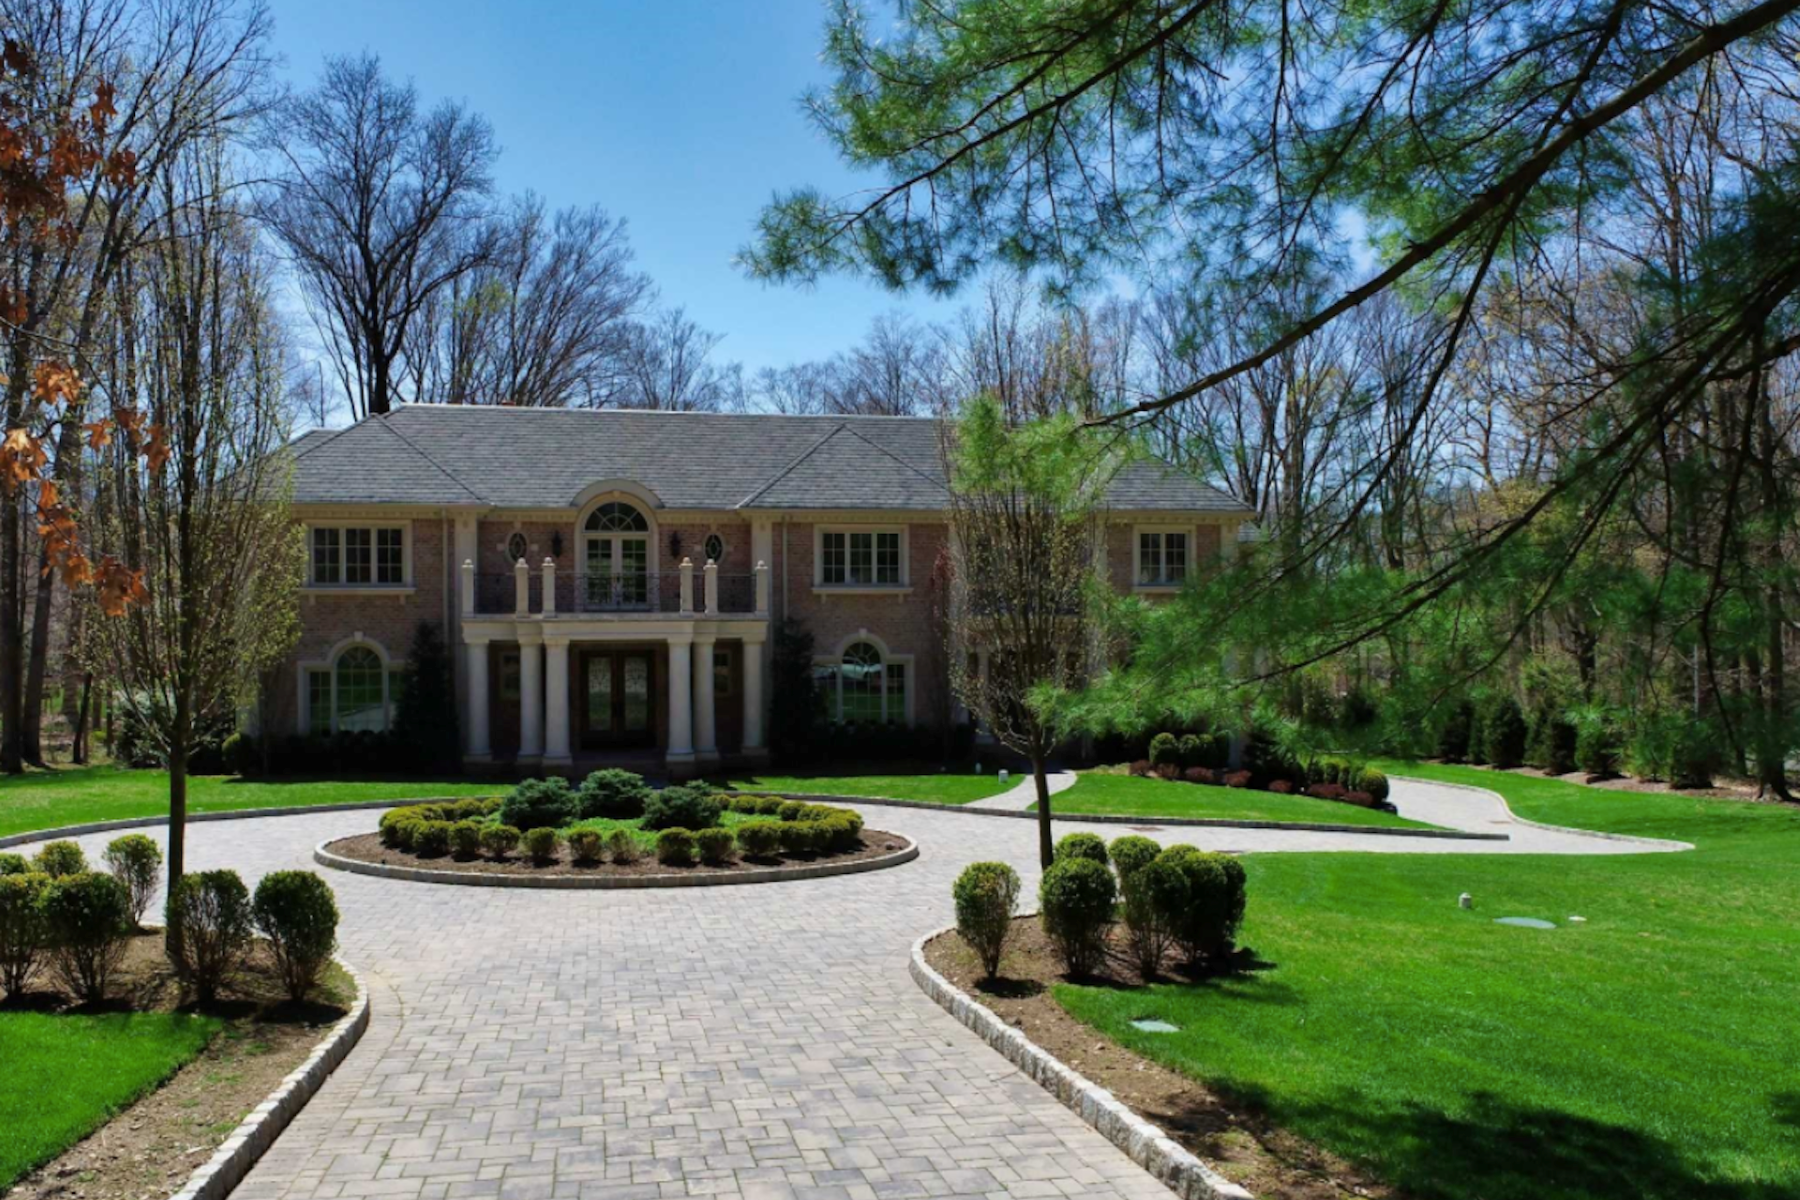 Single Family Homes for Sale at 46 Westerly Rd Saddle River, New Jersey 07458 United States